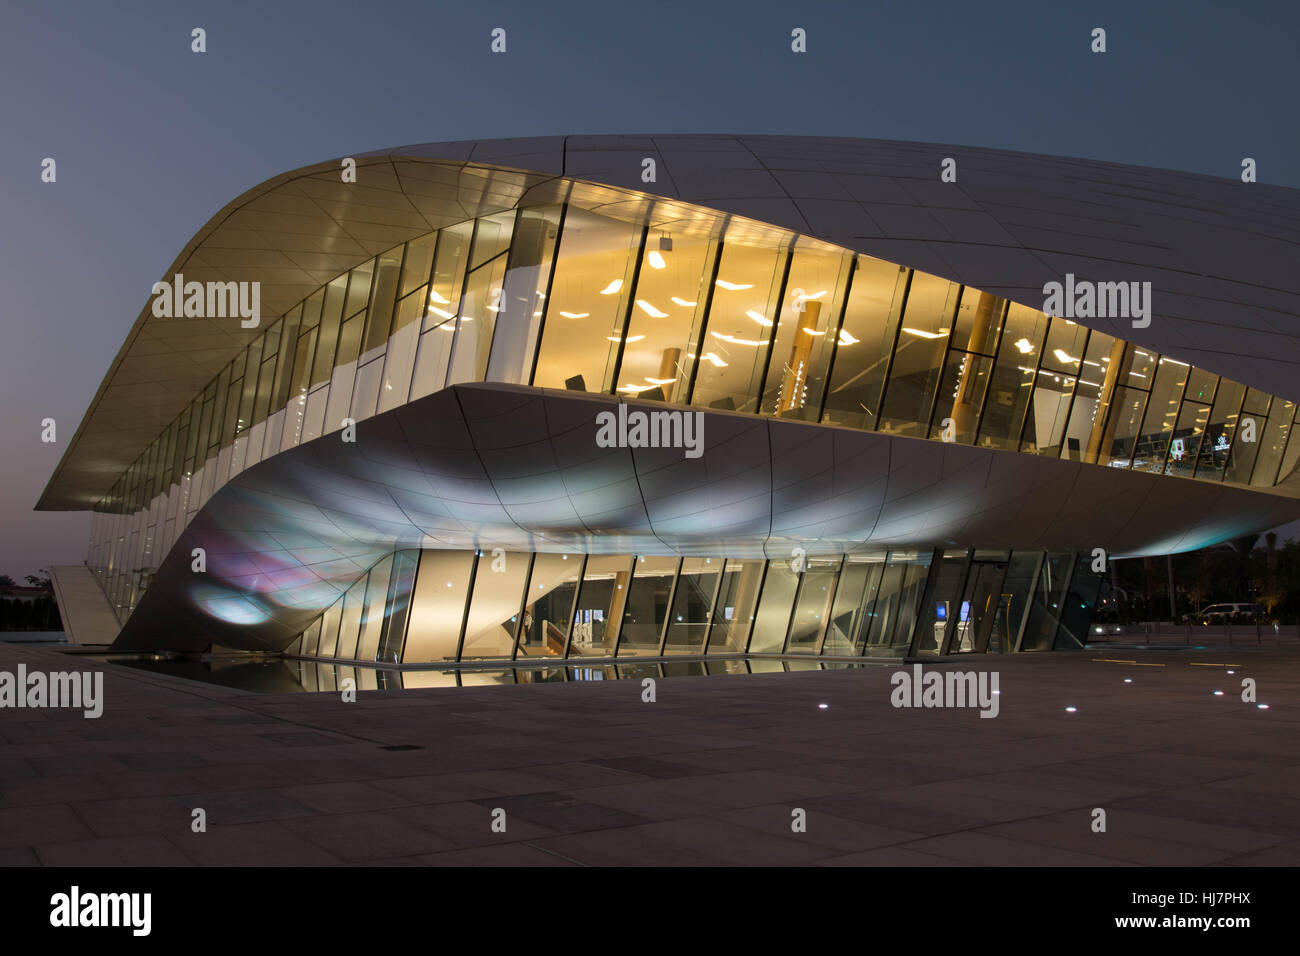 Etihad museum street front side view of building at night Dubai - Stock Image